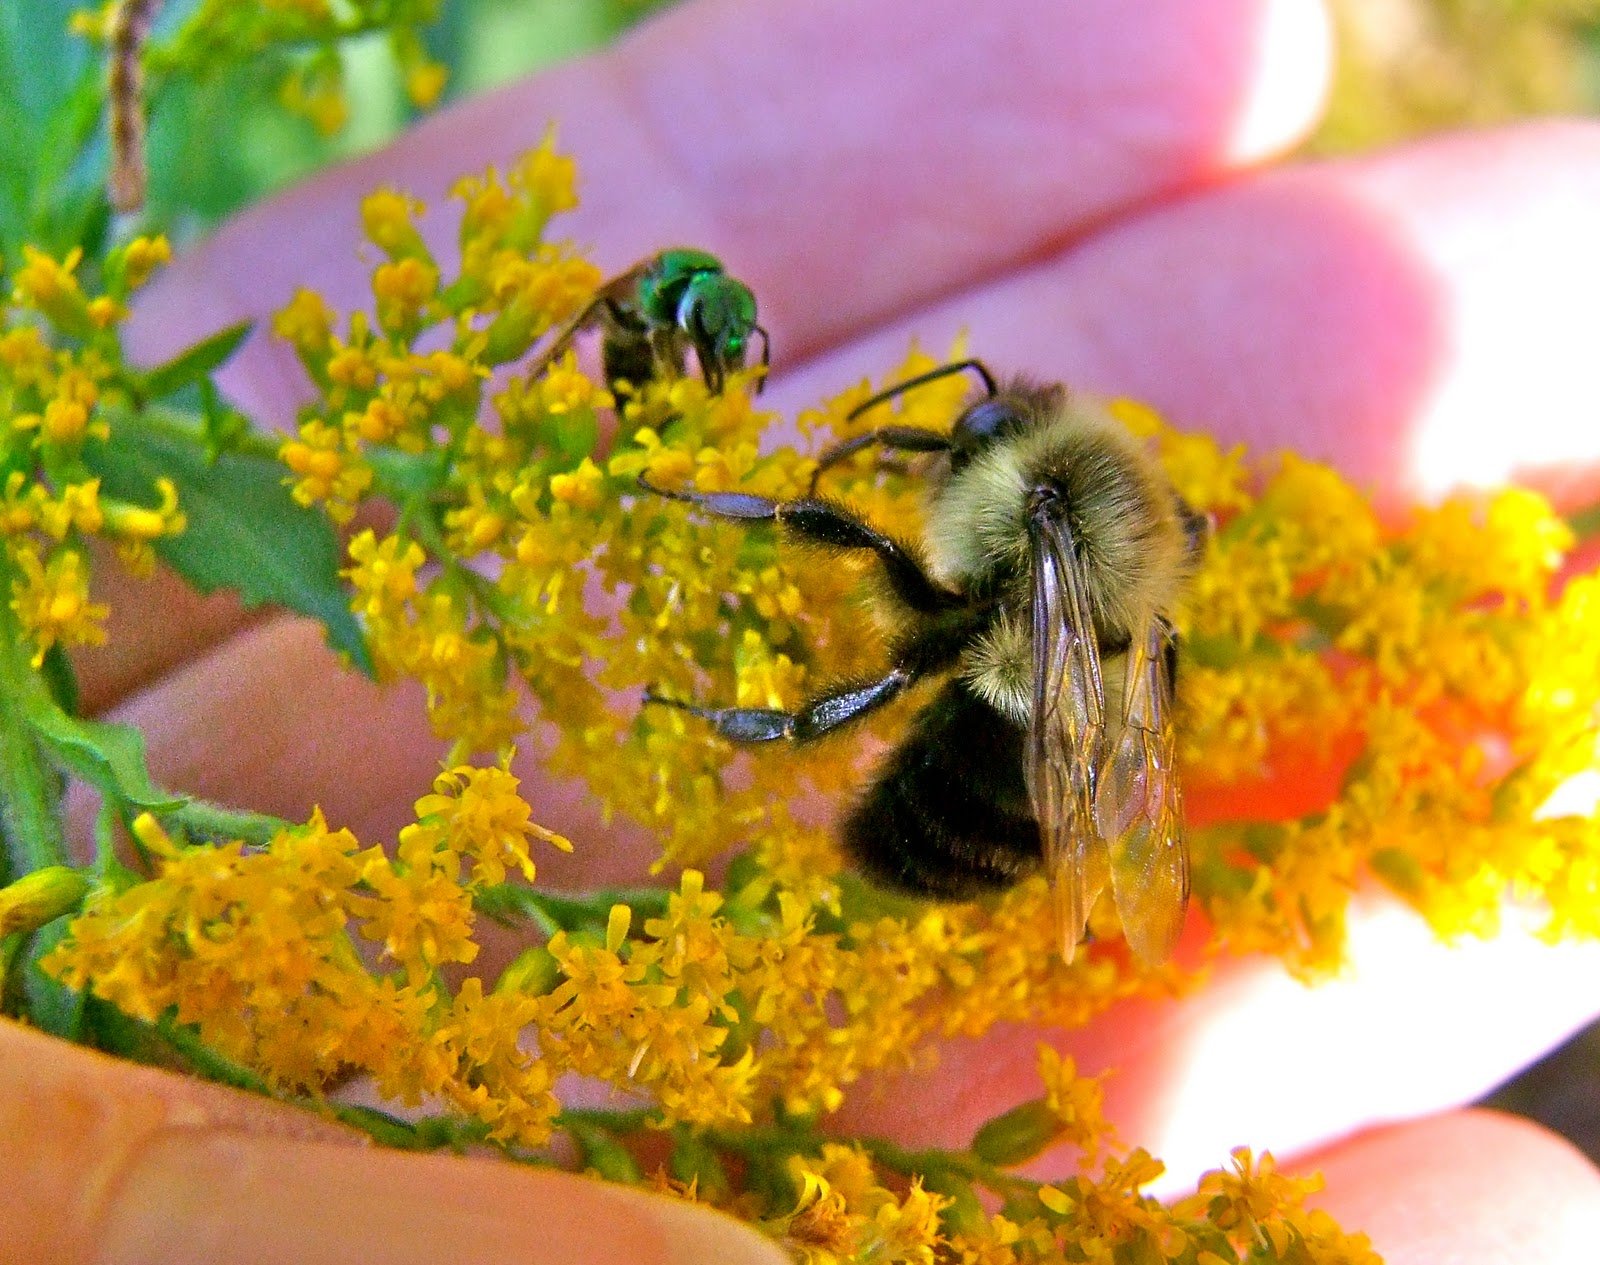 Pollen bees/native bees are